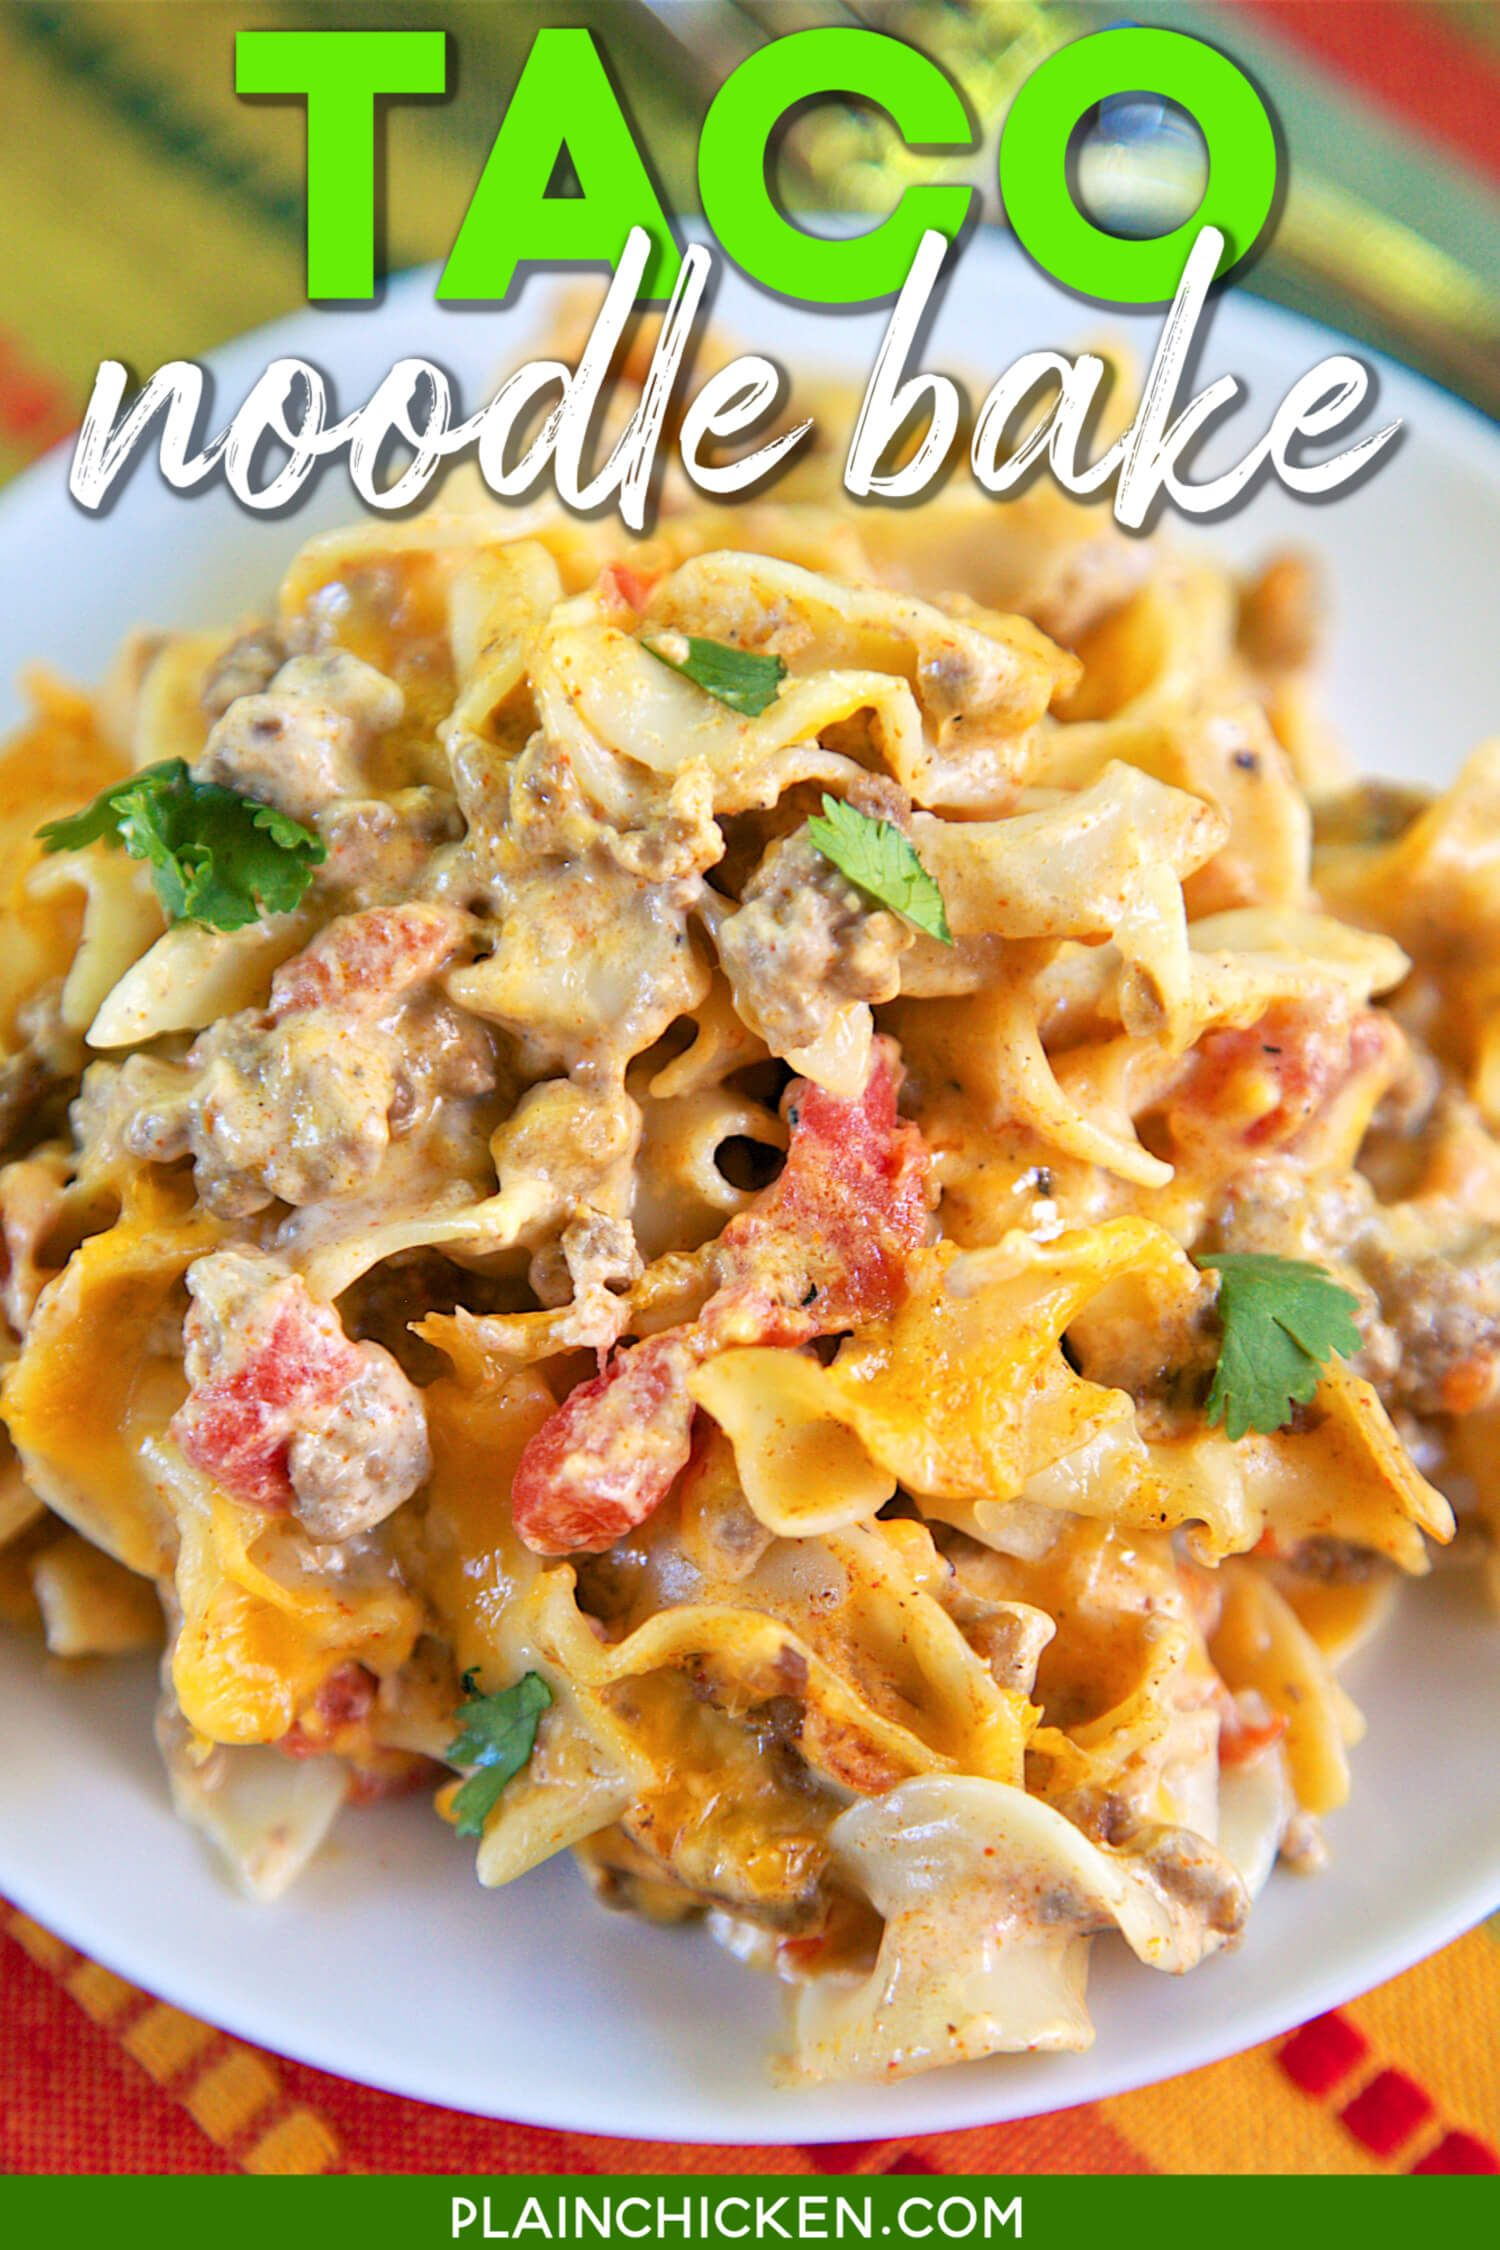 Taco Noodle Bake Plain Chicken In 2020 Mexican Food Recipes Cooking Recipes Chicken Recipes